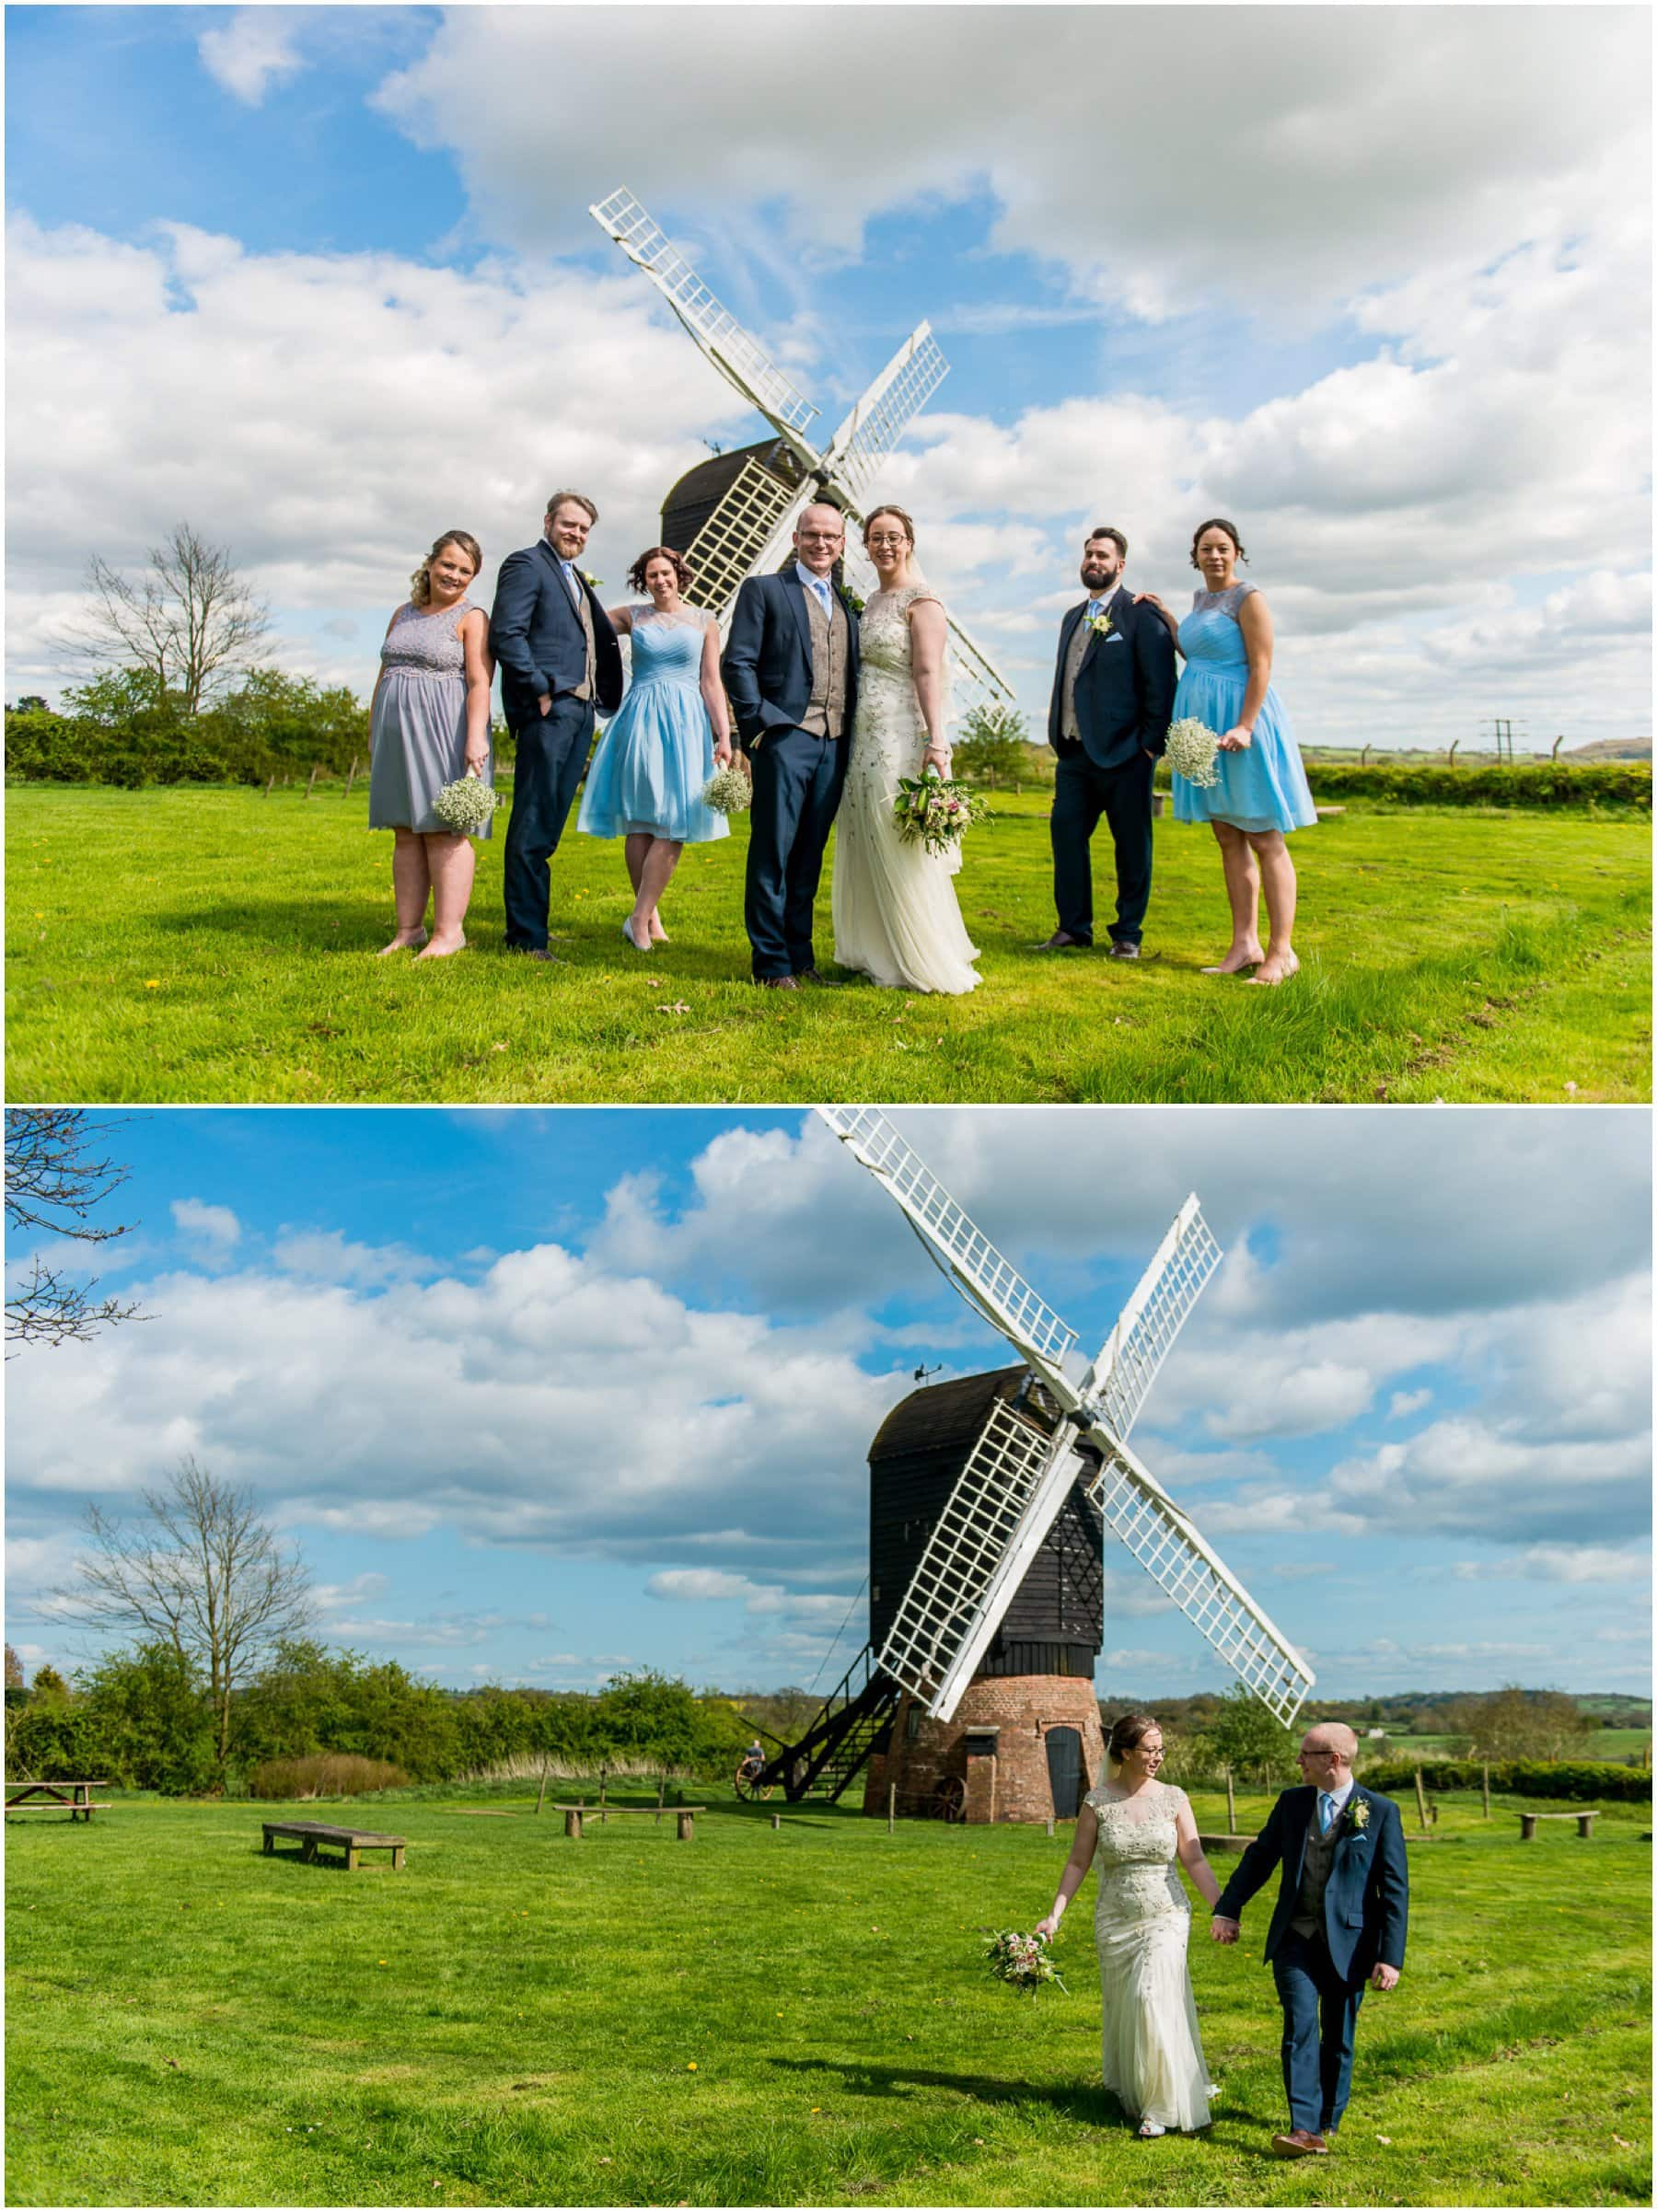 Caroline and Mark's beautiful vintage wedding at Avoncroft Museum in Bromsgrove with photographs by Lisa Carpenter Photography, West Midlands wedding photographer specialising in creative, cool, alternative and contemporary wedding photos.